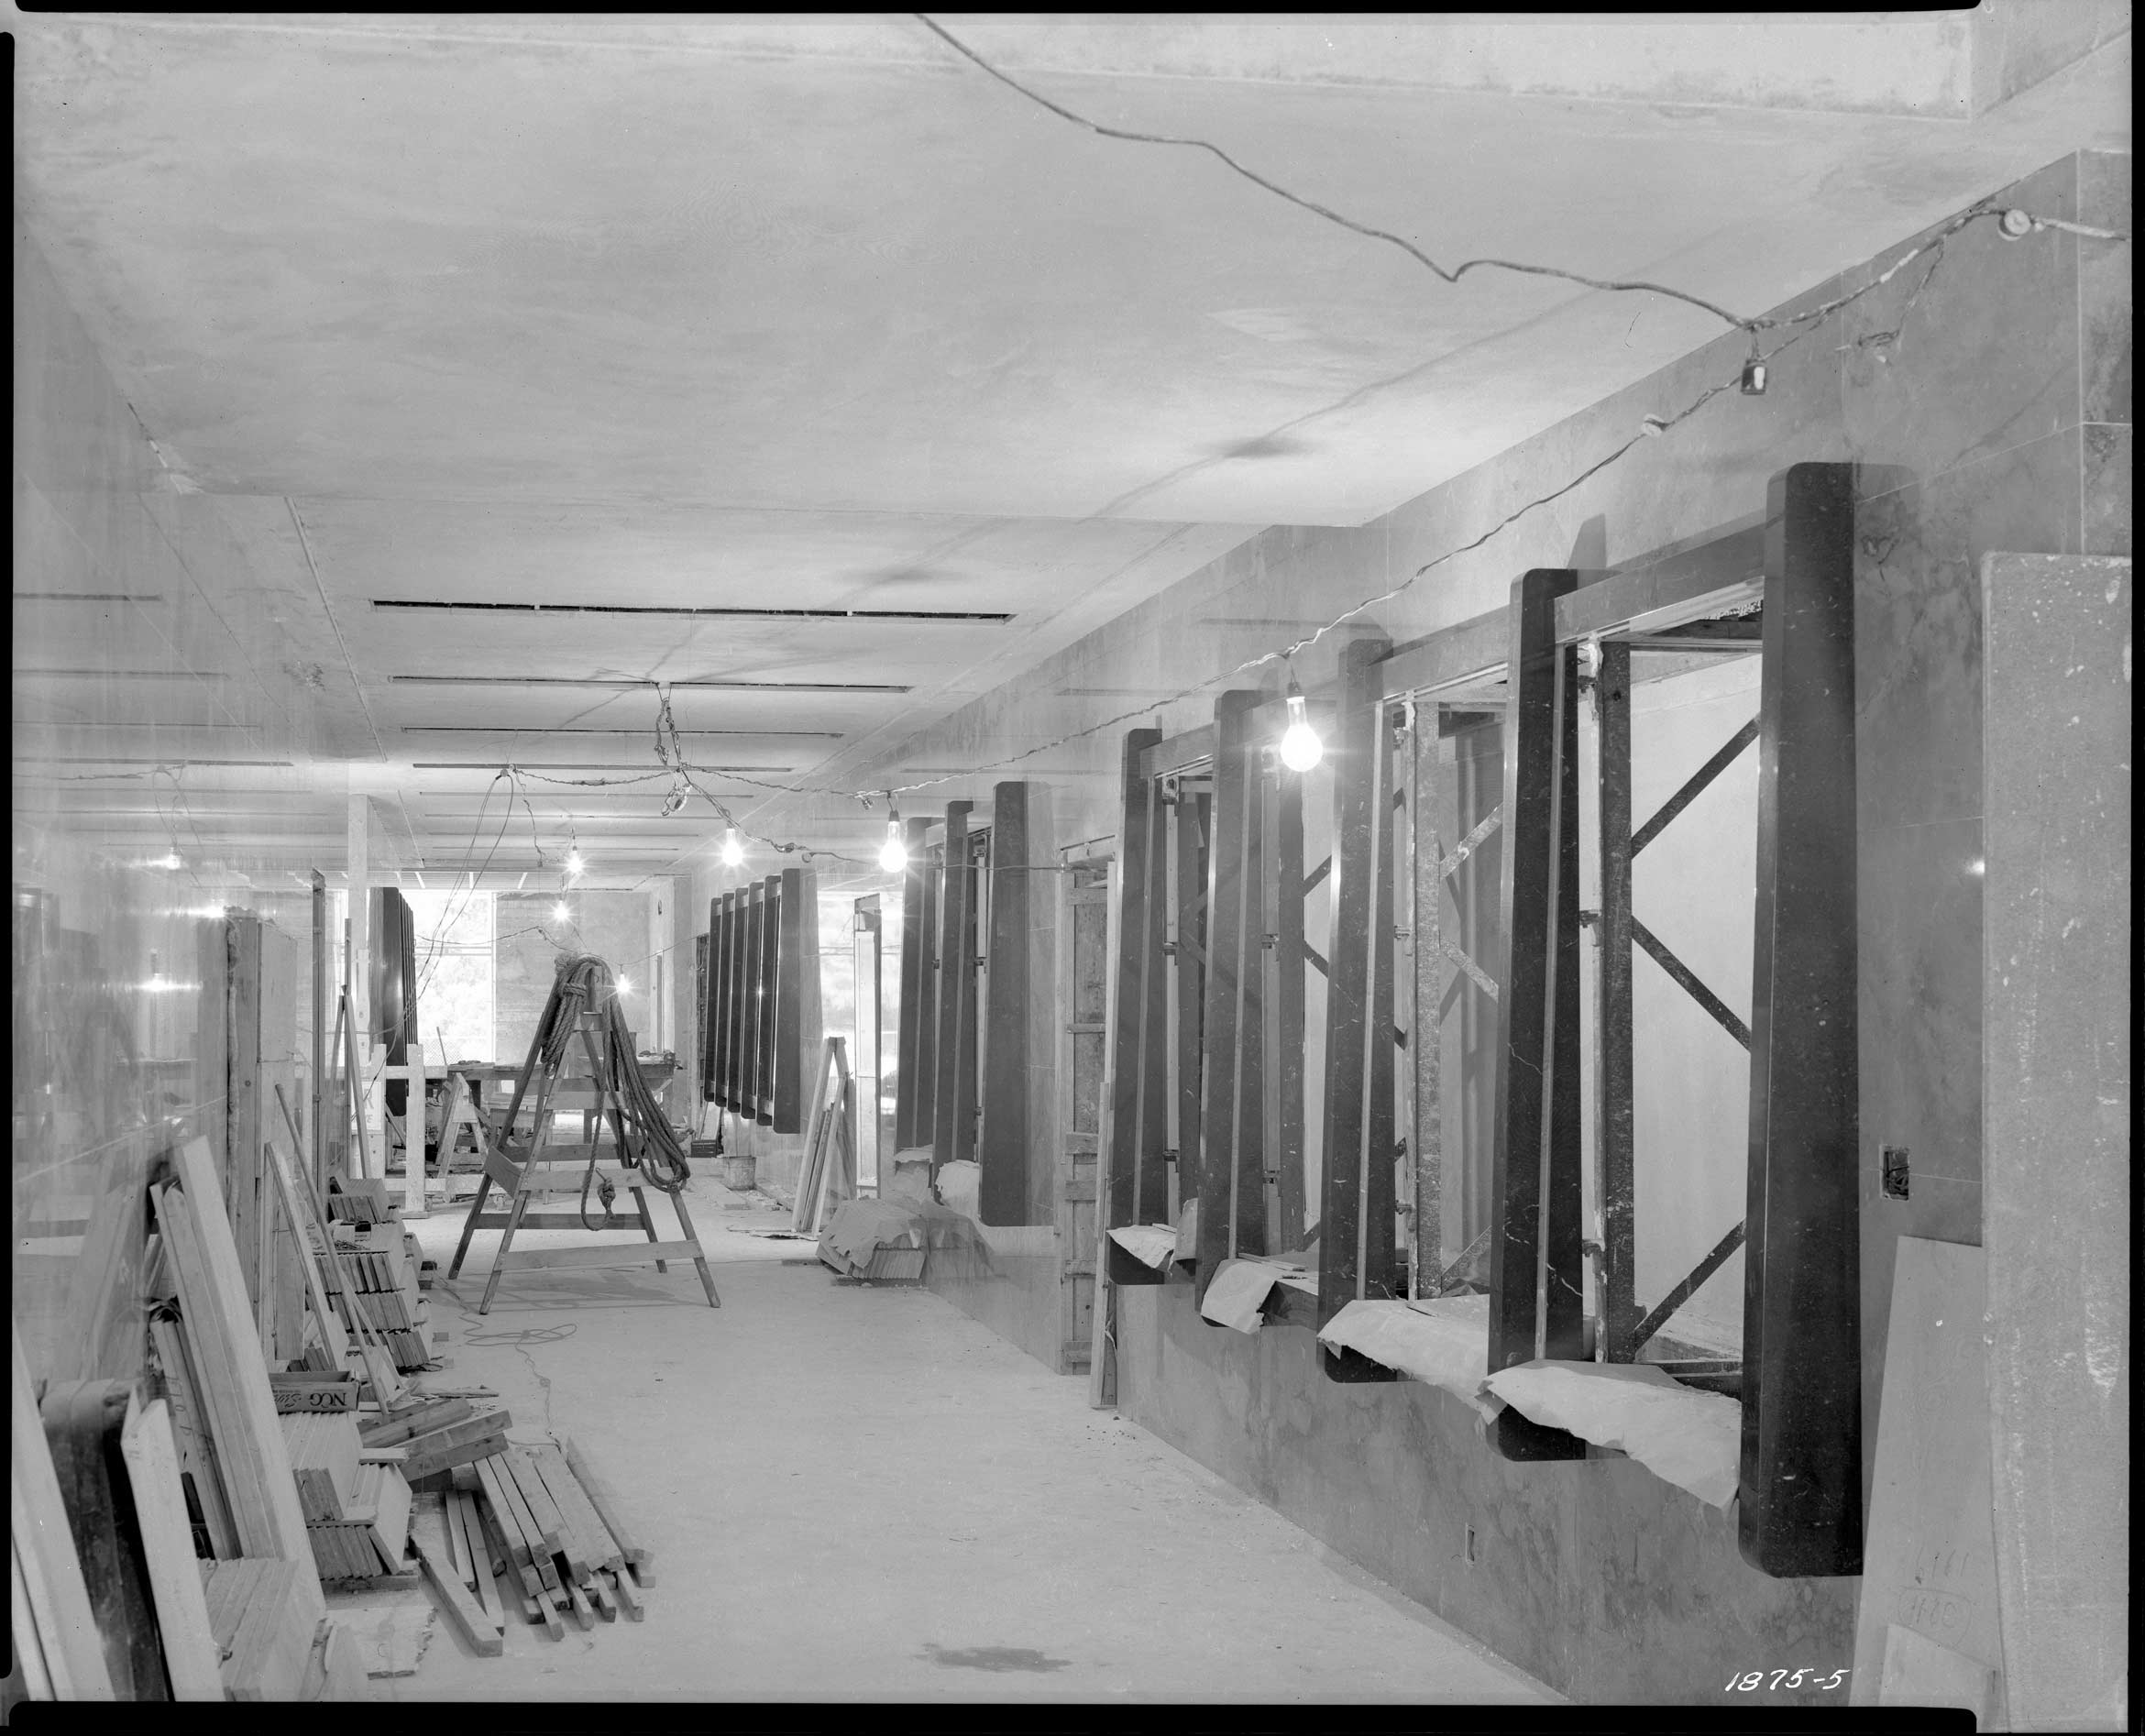 Capitol annex first floor interior showing county exhibit niches under construction september 1950 black and white photo